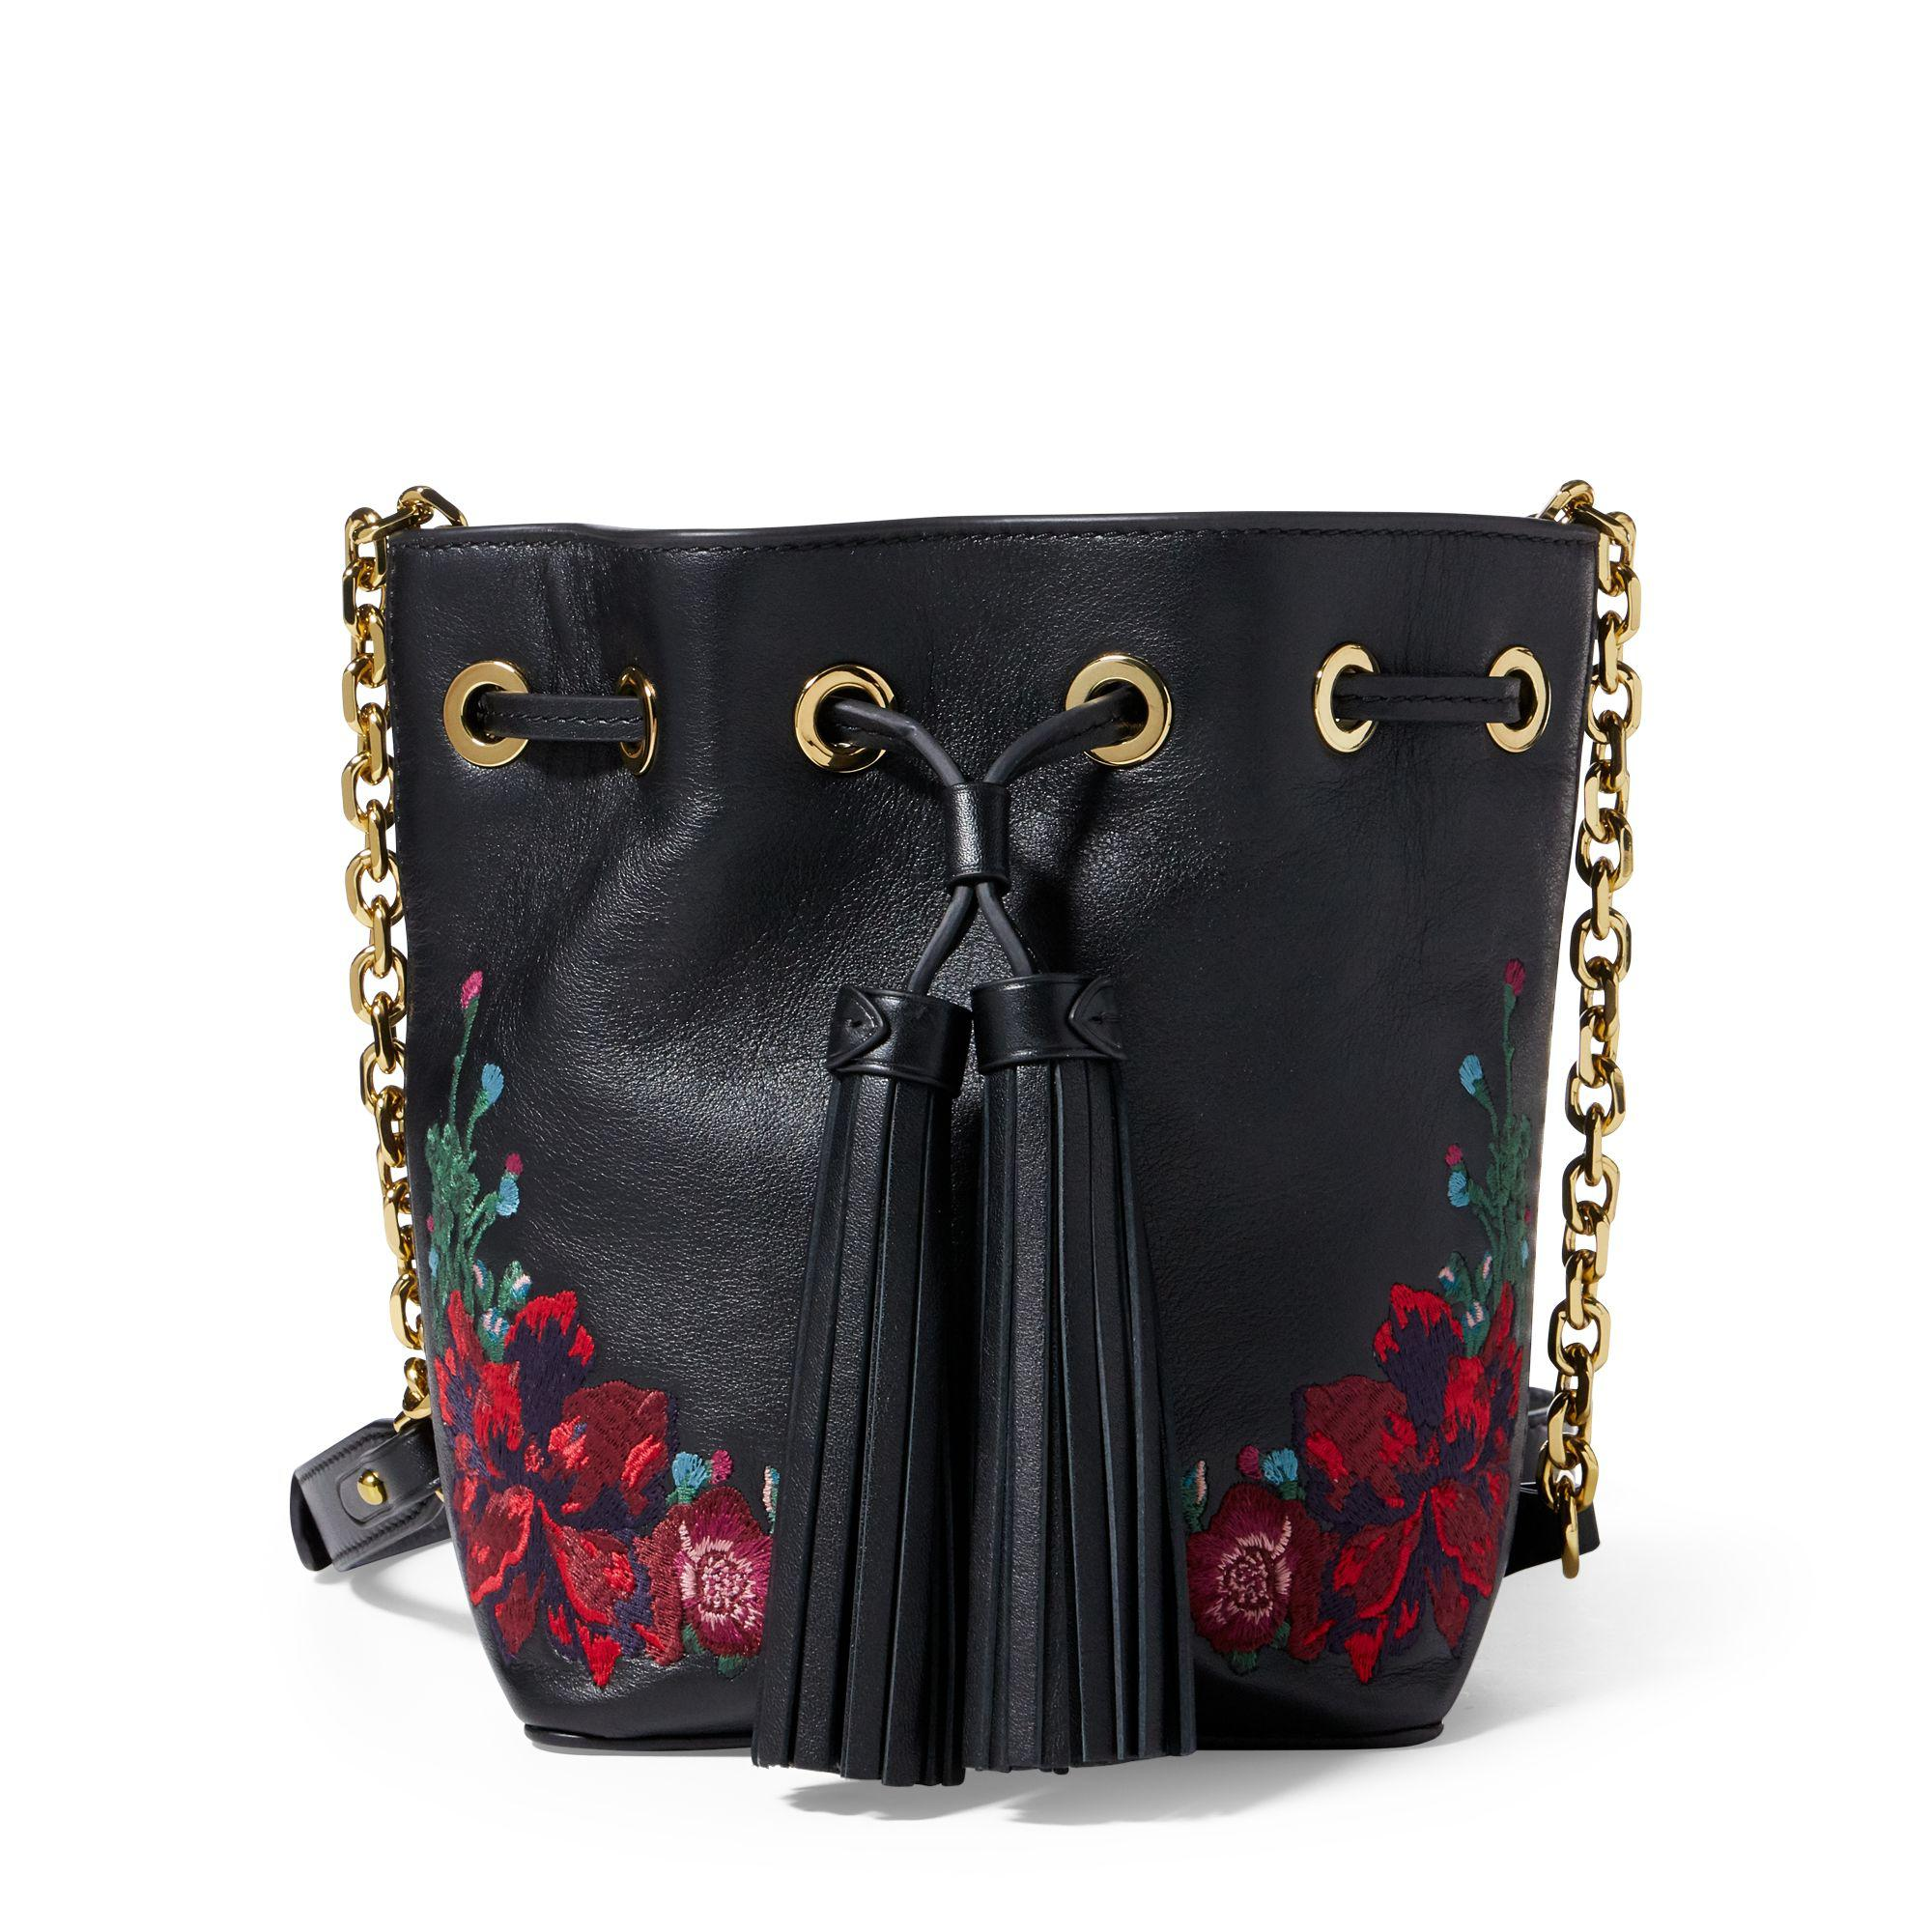 Polo Ralph Lauren Embroidered Nappa Bucket Bag in Black - Lyst 1caa2ae280a3e